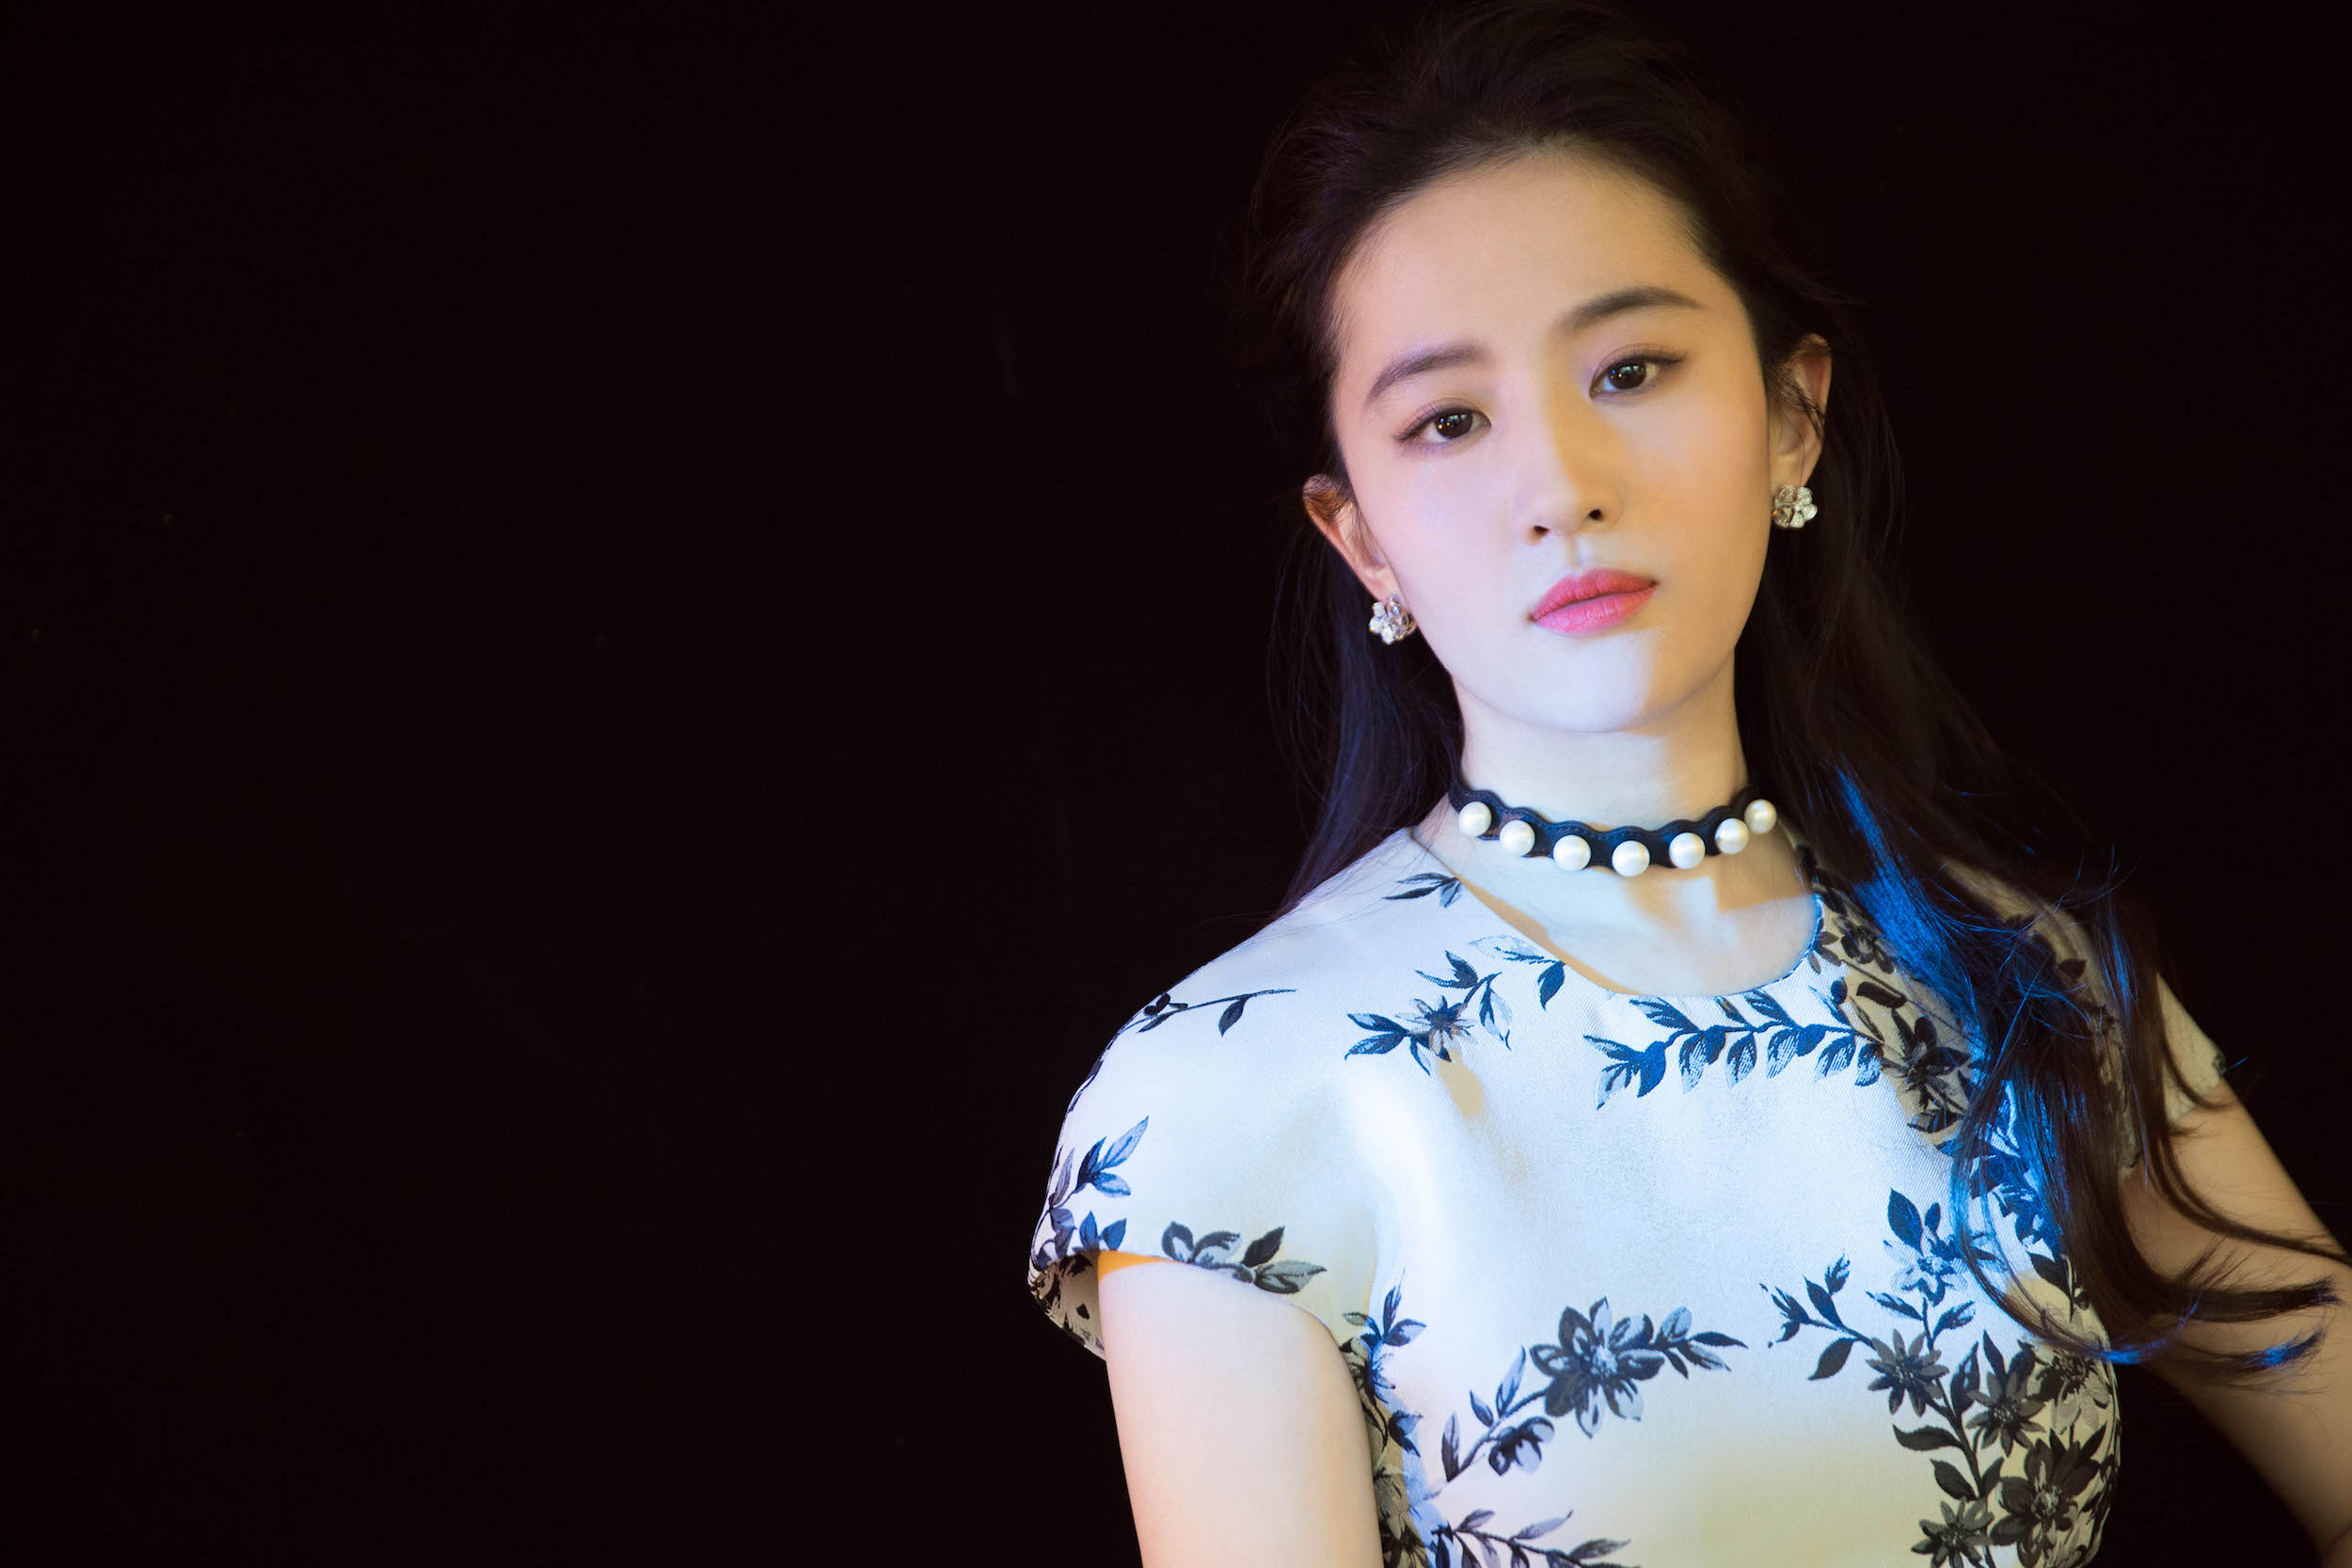 Liu Yifei to star in Disney's live-action 'Mulan'